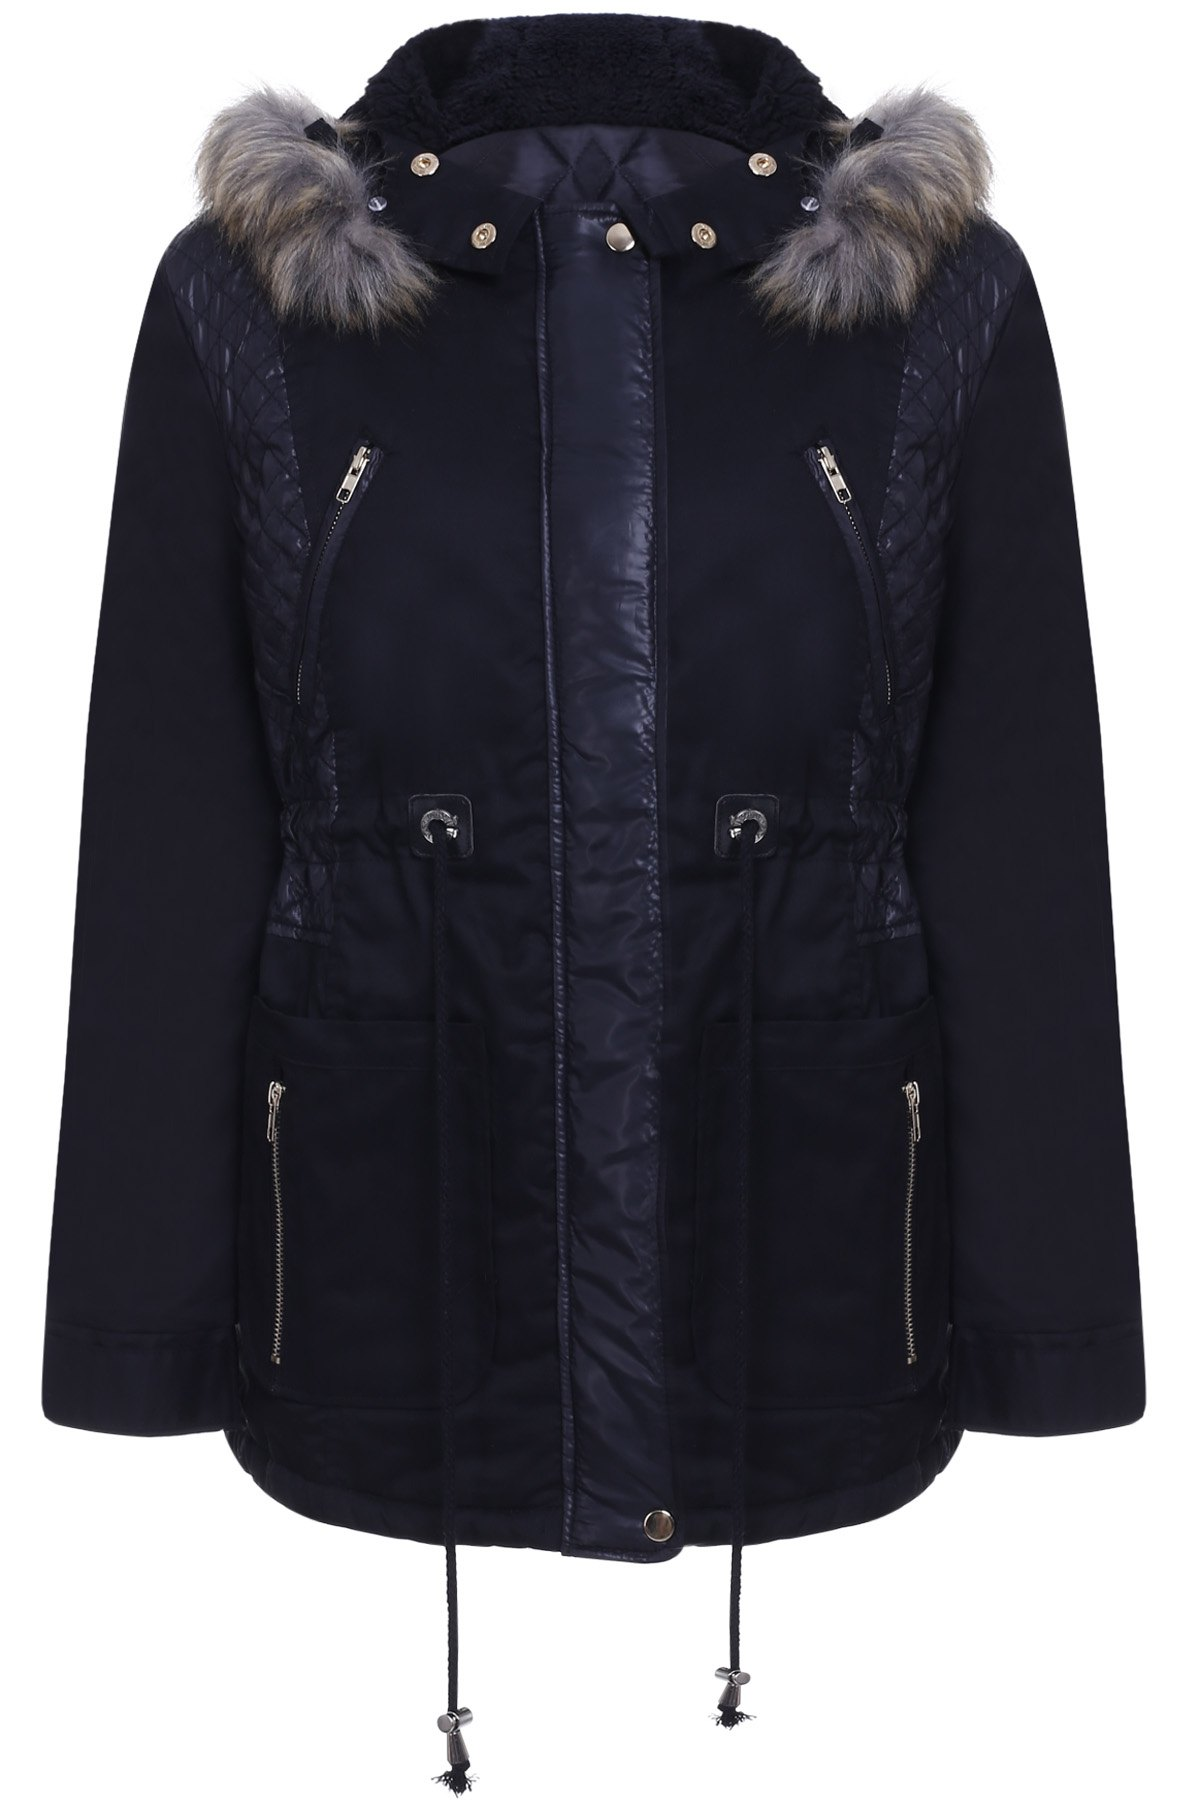 Faux Fur Hooded Long Sleeve PU Splicing Thick Coat For WomenWomen<br><br><br>Size: M<br>Color: BLACK